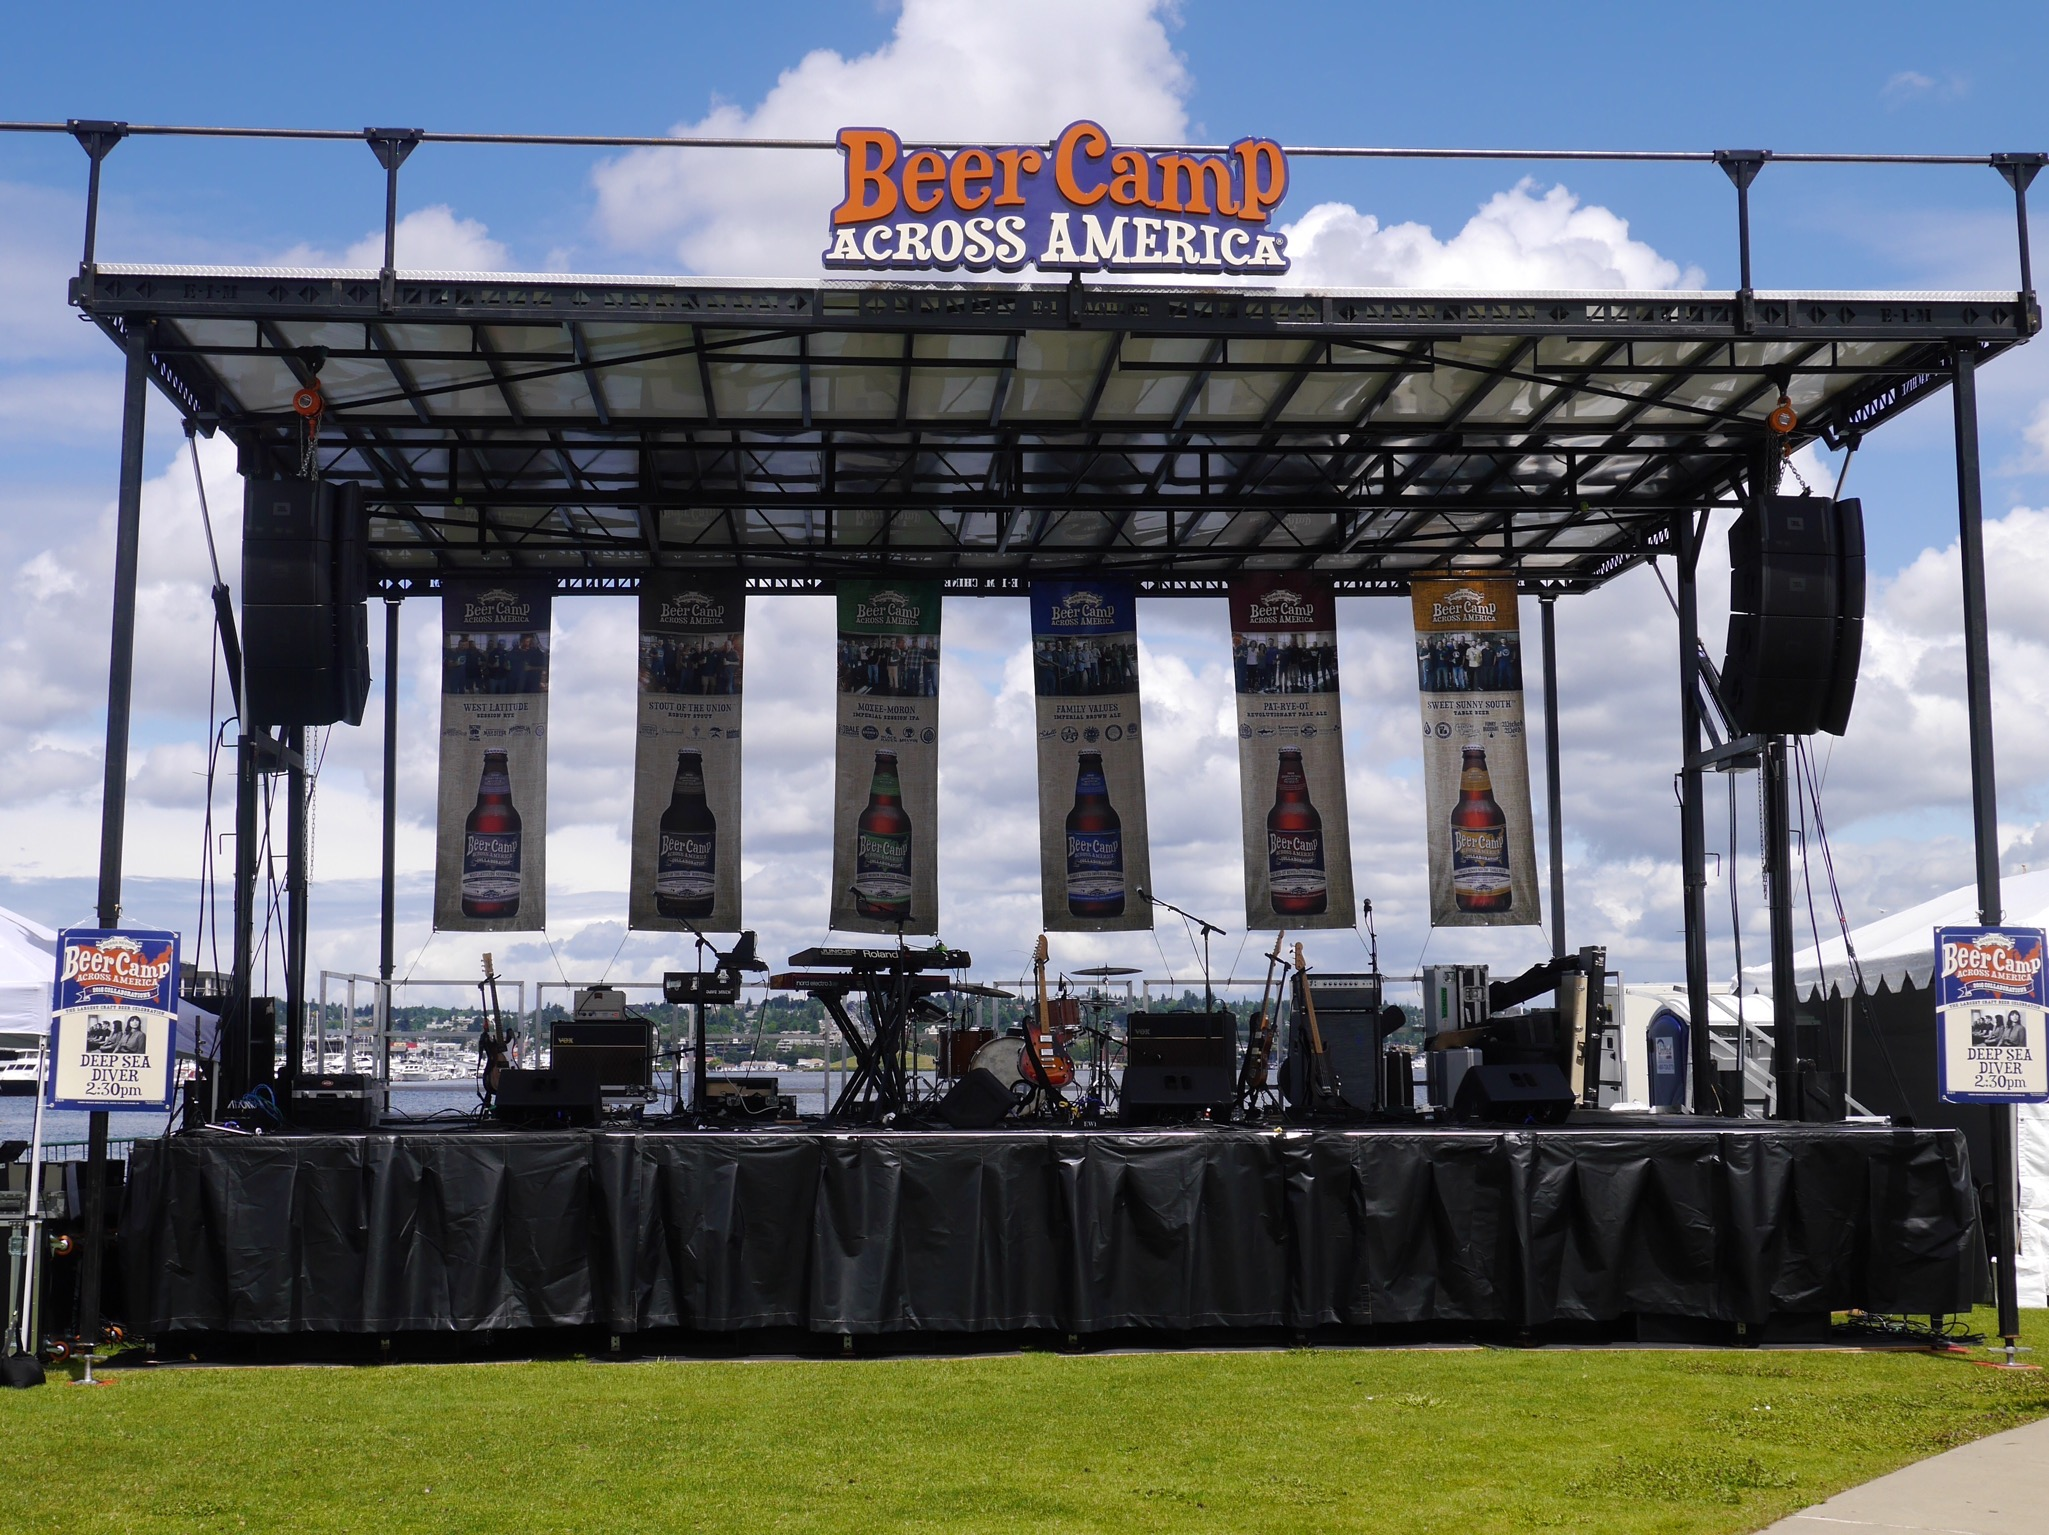 The main stage at Sierra Nevada Beer Camp Across America Festival in Seattle. (photo by Cat Stelzer)